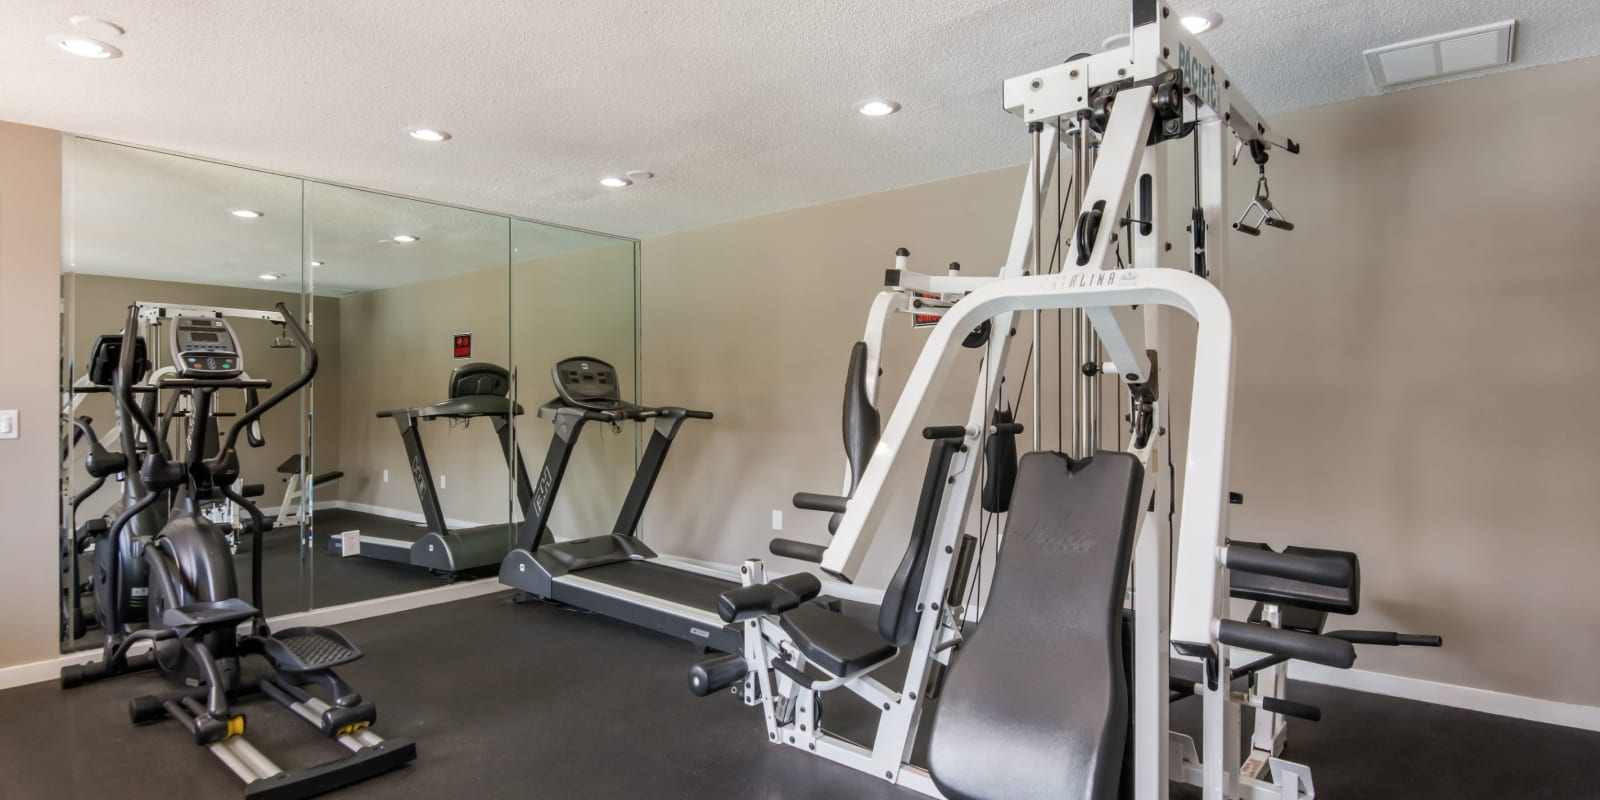 Fitness center with a mirrored-wall at Gable Oaks Apartment Homes in Rock Hill, South Carolina